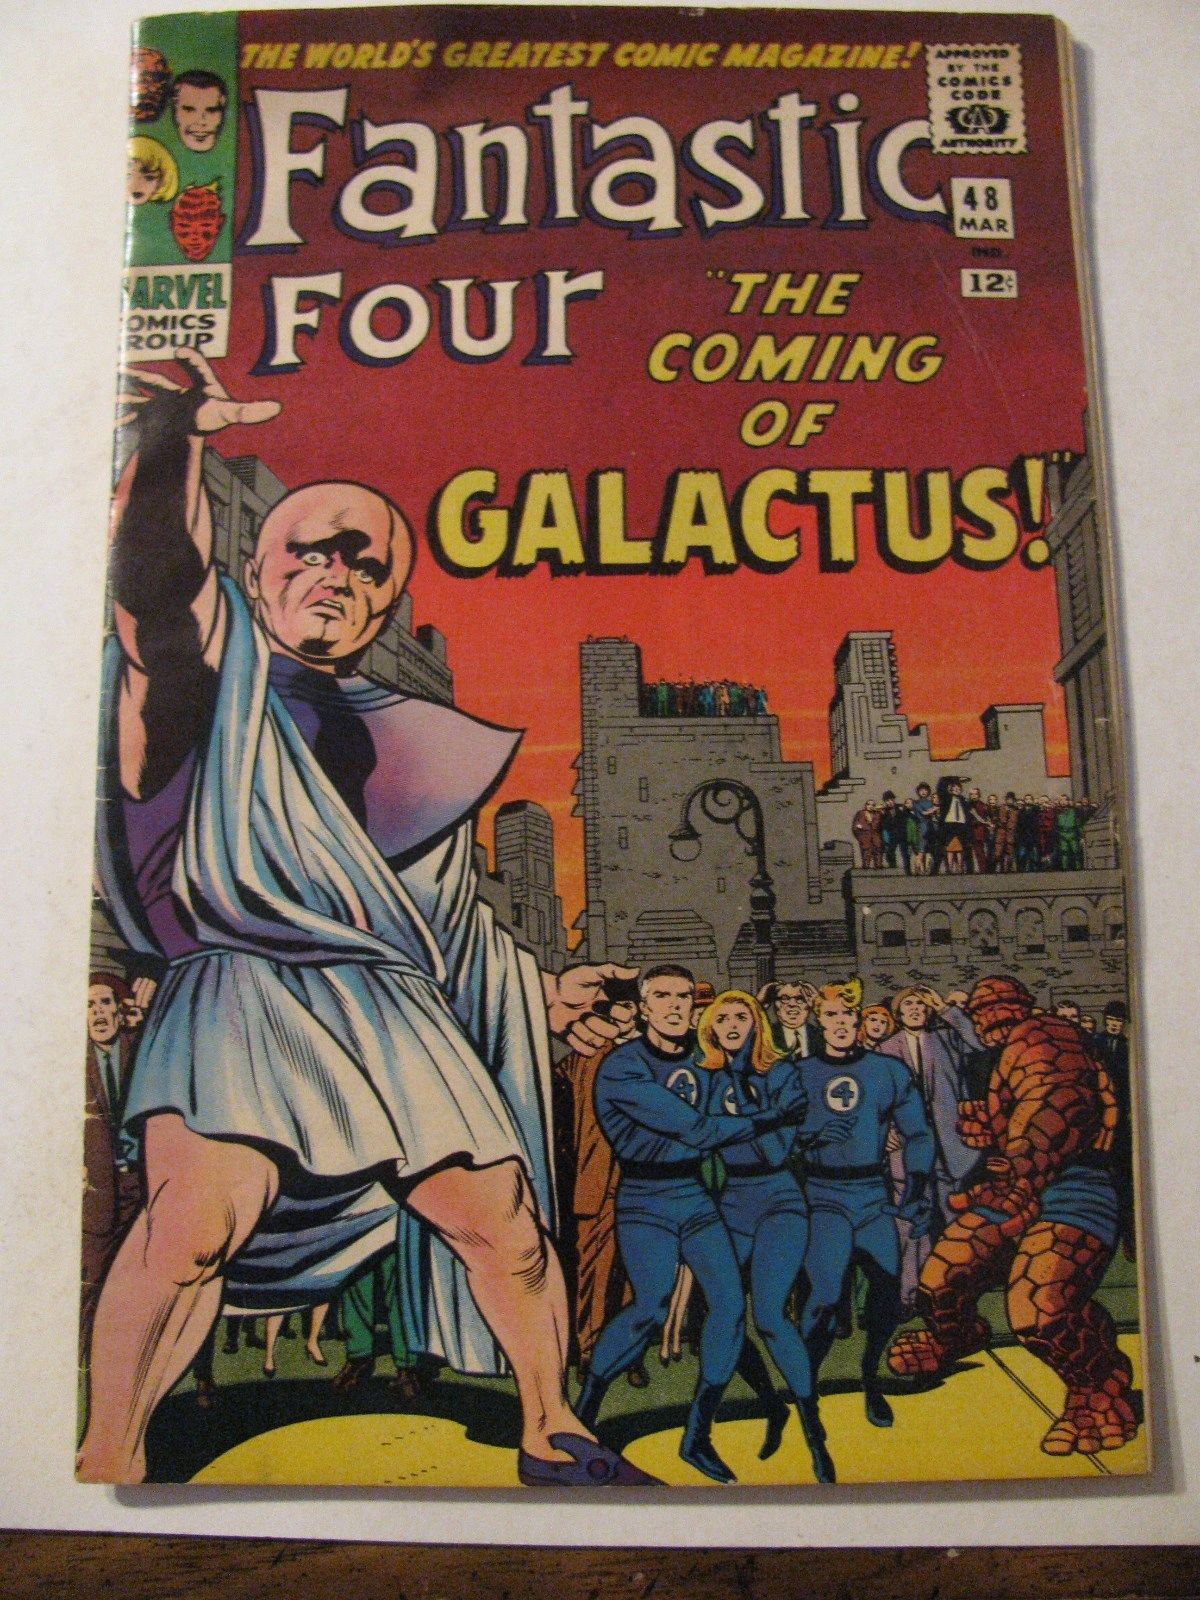 FANTASTIC FOUR #48 Silver Age Comic Book Marvel 1965 GALACTUS SURFER FIRST APP.